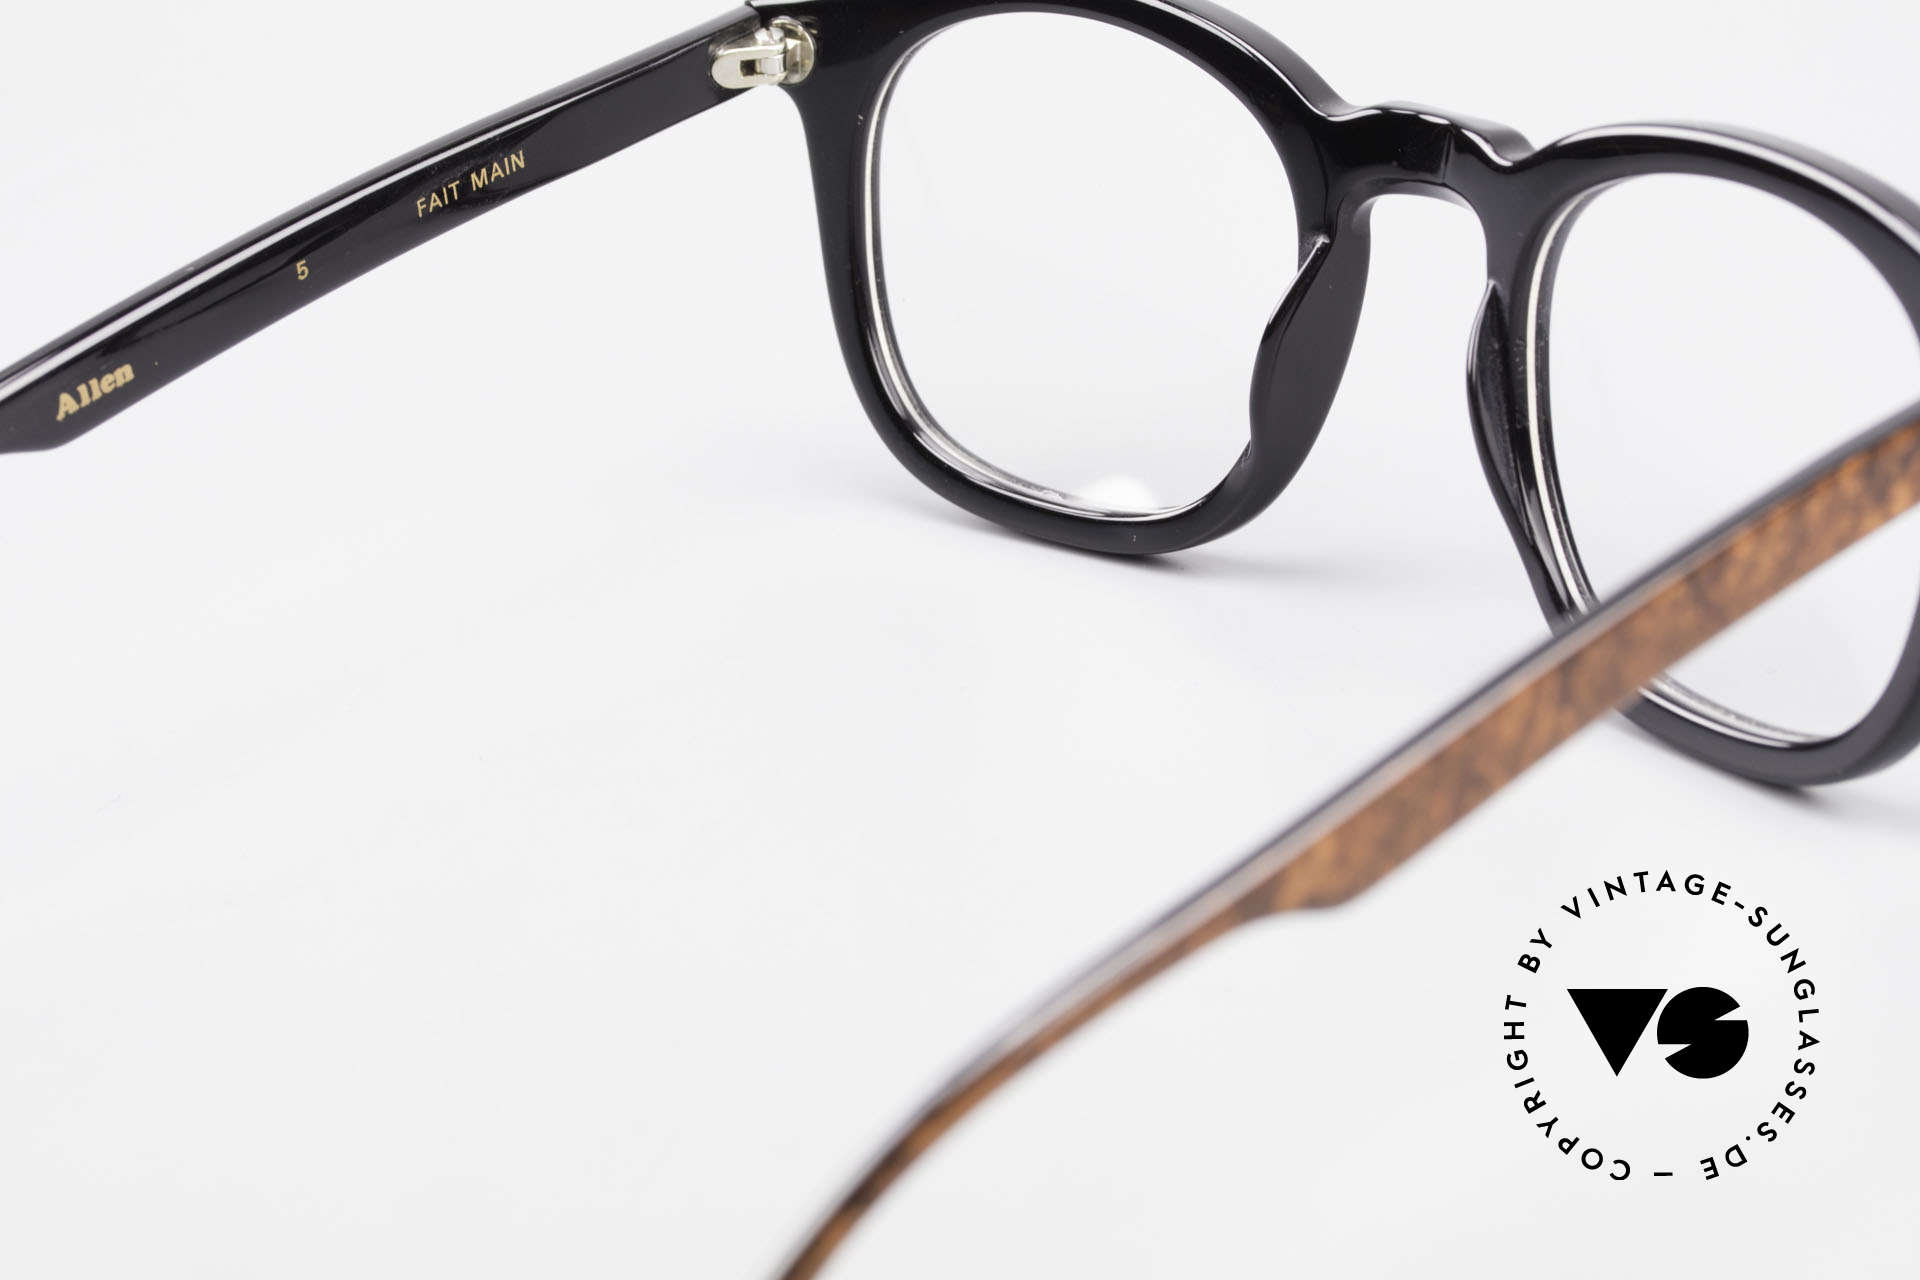 Traction Productions Allen Woody Allen Glasses 1980's, frame can be glazed optionally (optical and sun), Made for Men and Women